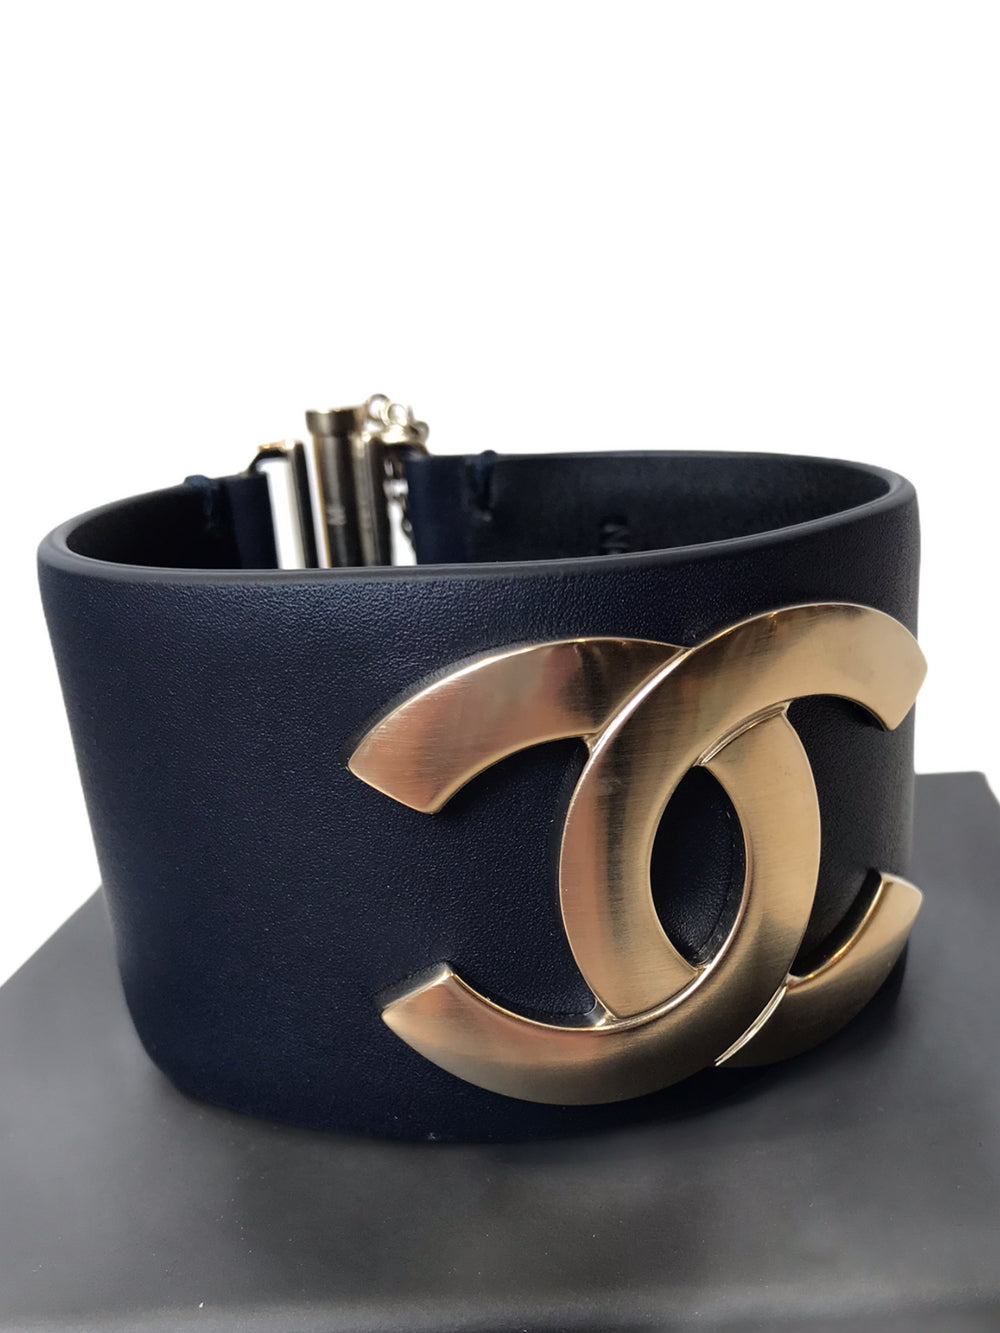 "Chanel Navy ""CC"" Bangle Bracelet - As Seen on Instagram"